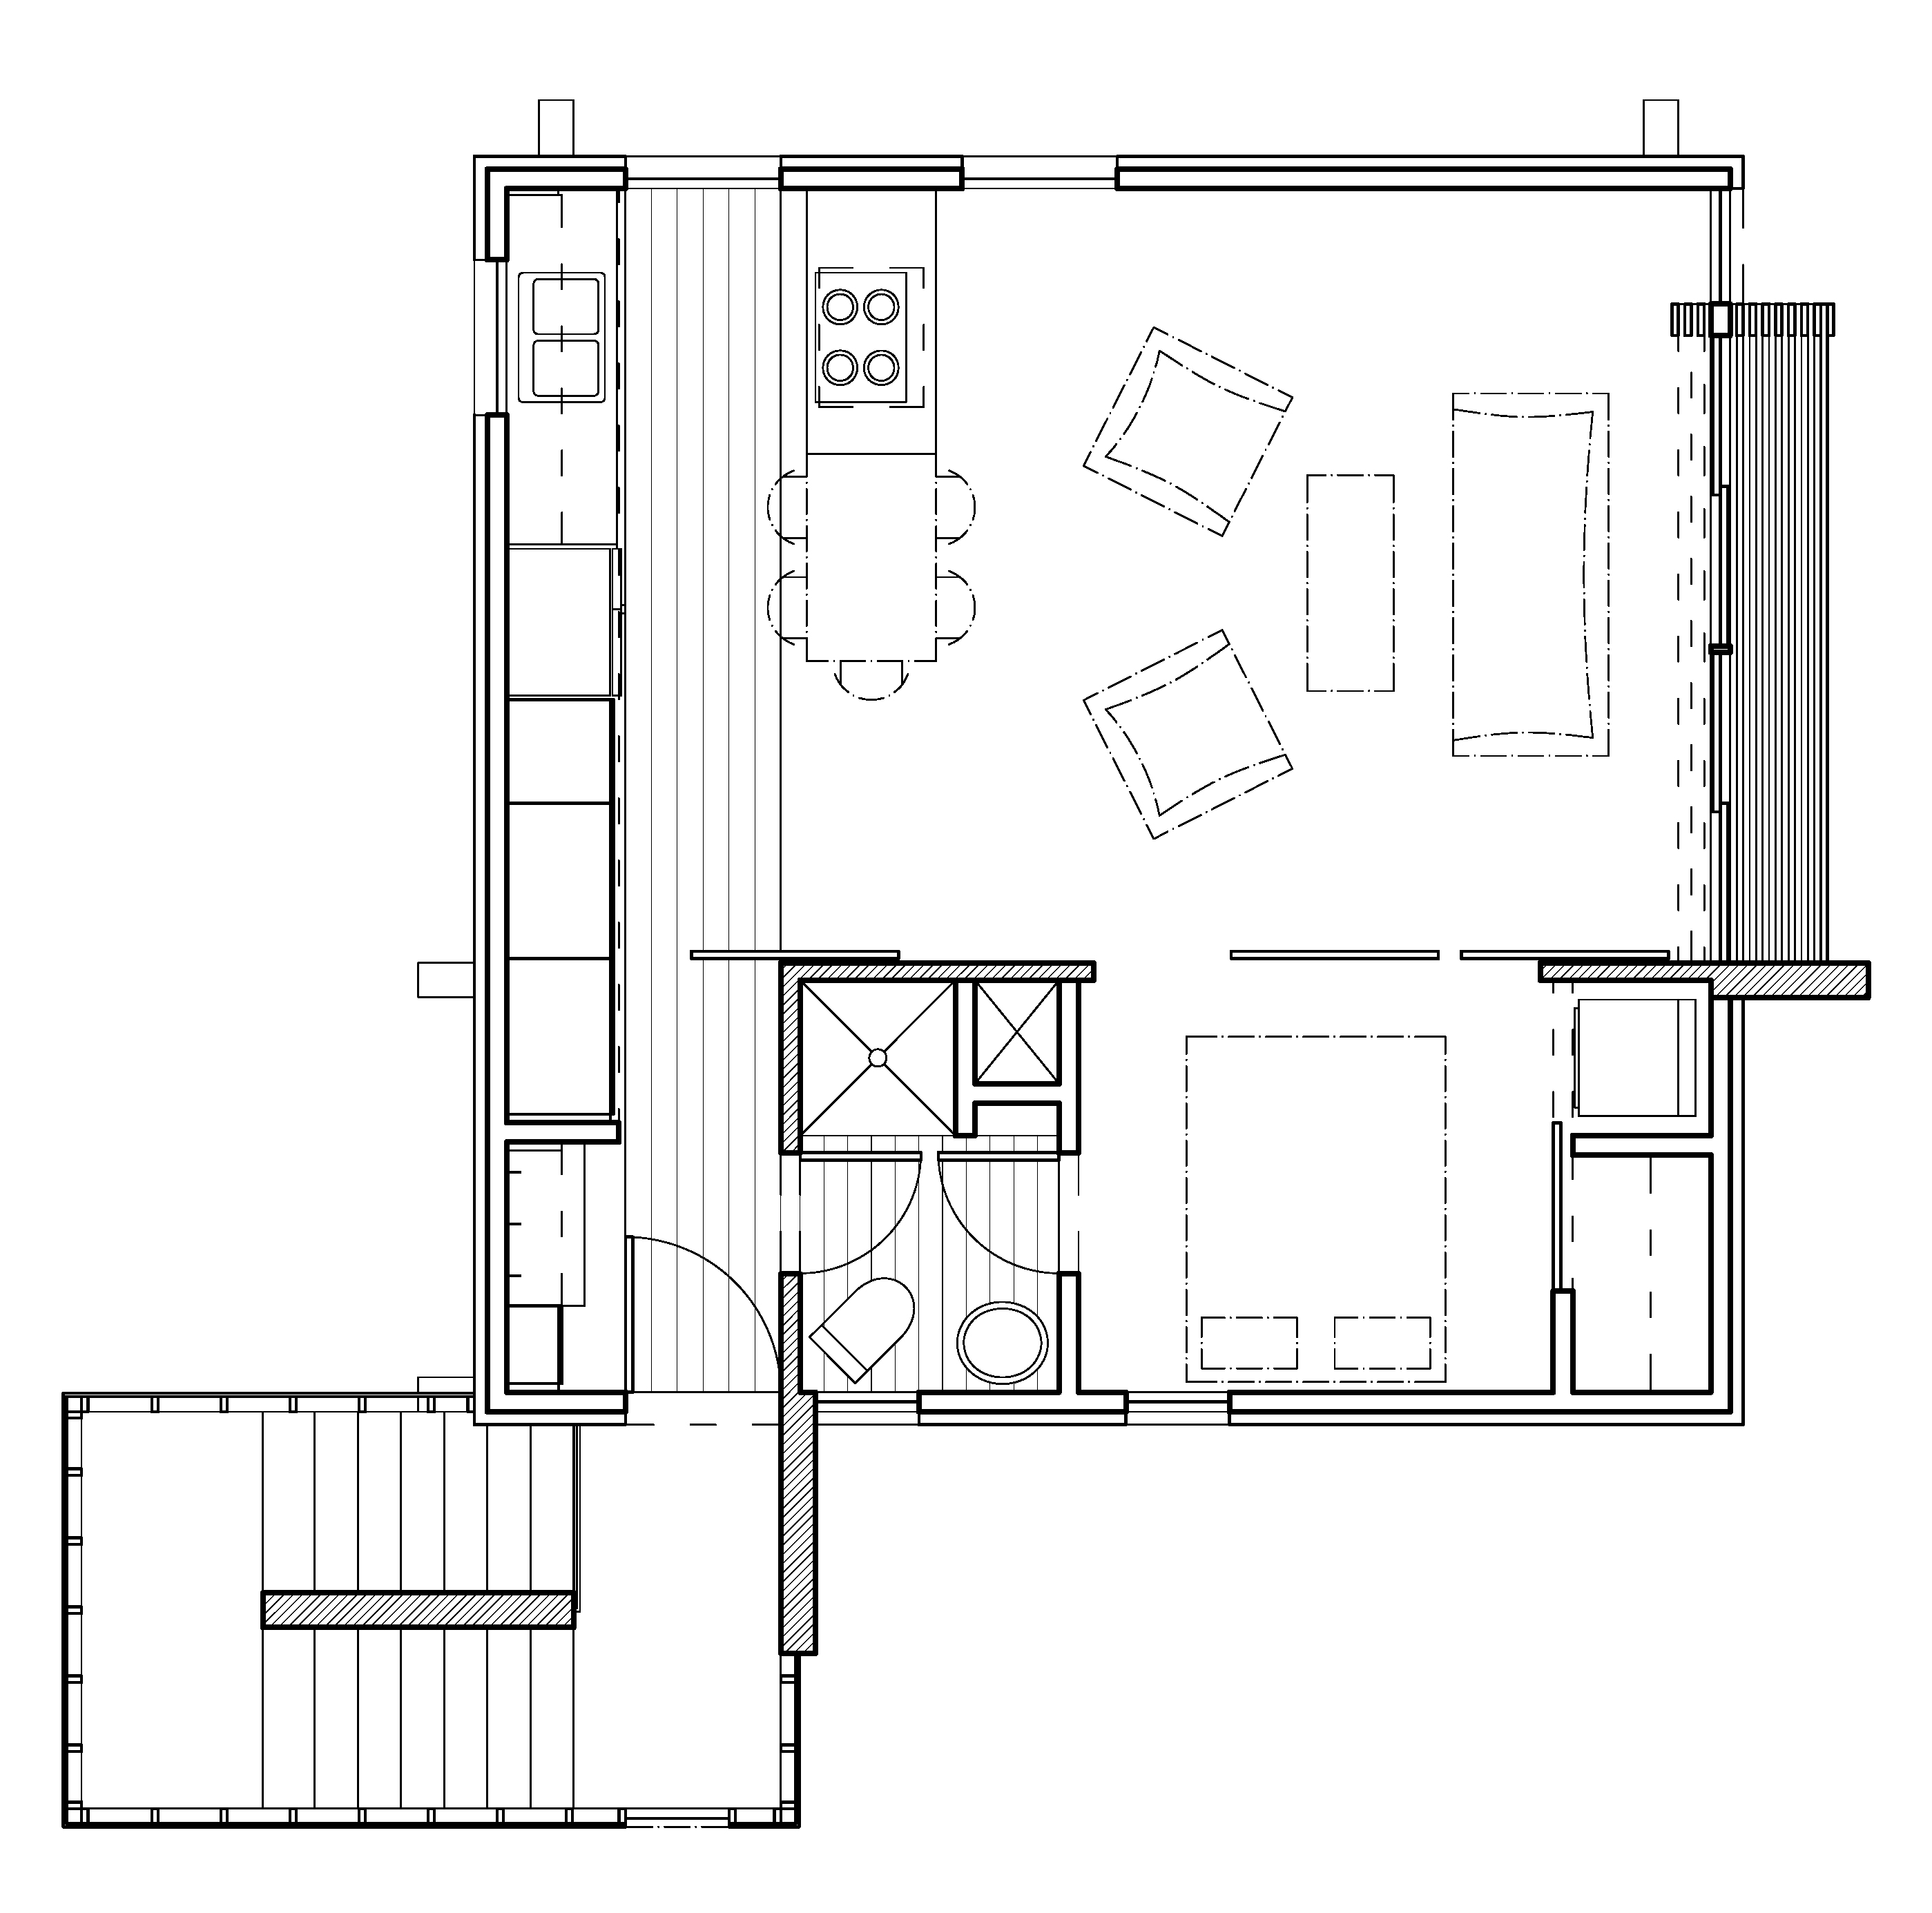 Modern house plans contemporary home designs floor plan 04 Small house designs and floor plans